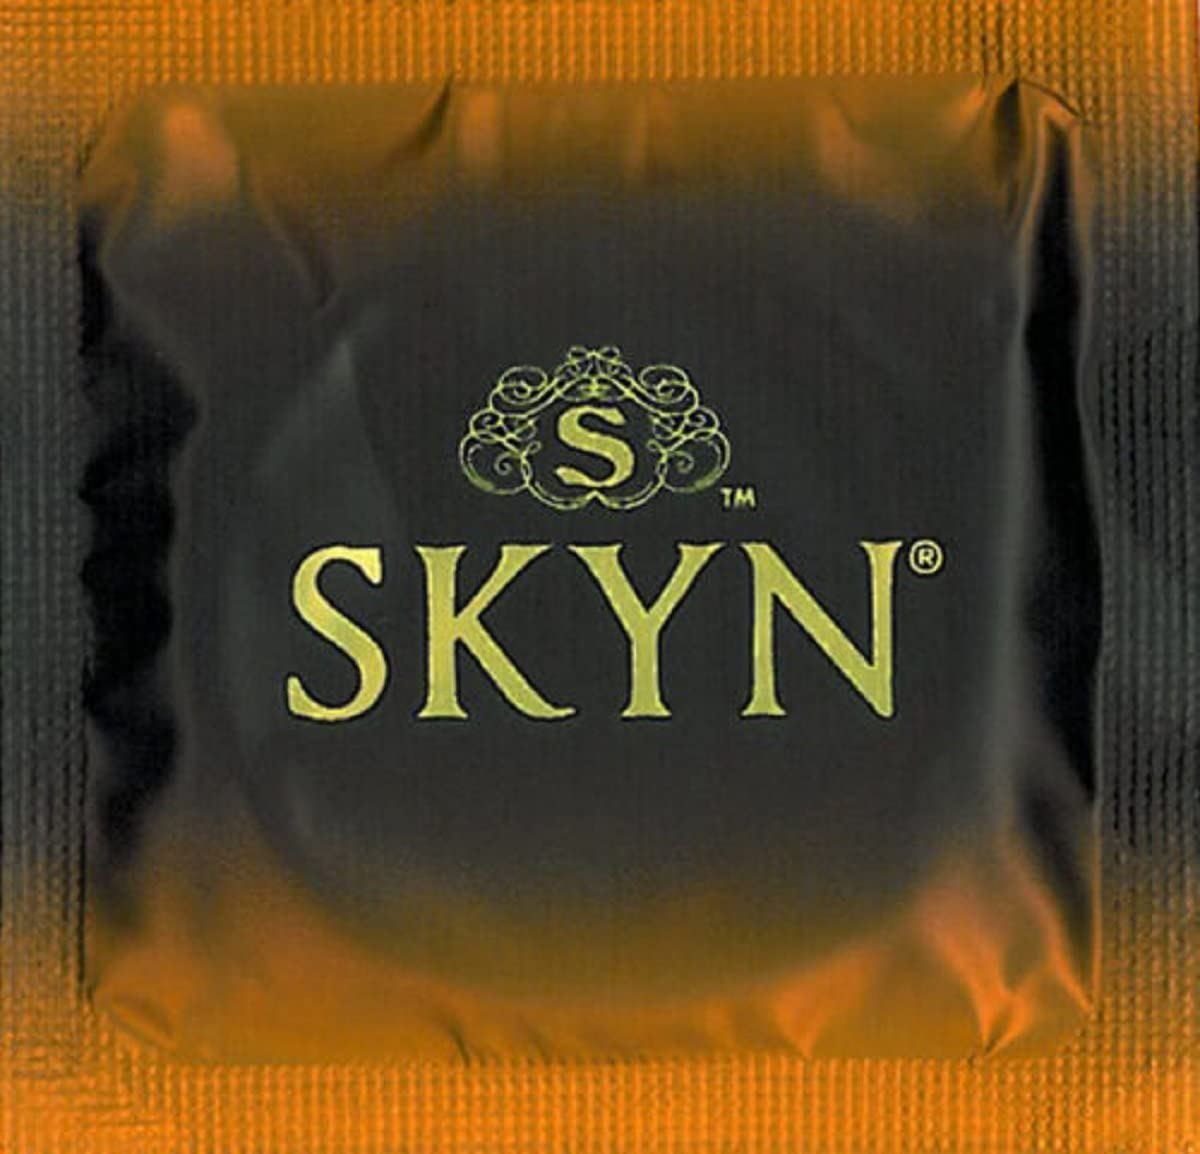 Popularity Lifestyles SKYN New product!! Large Condoms Count - 60